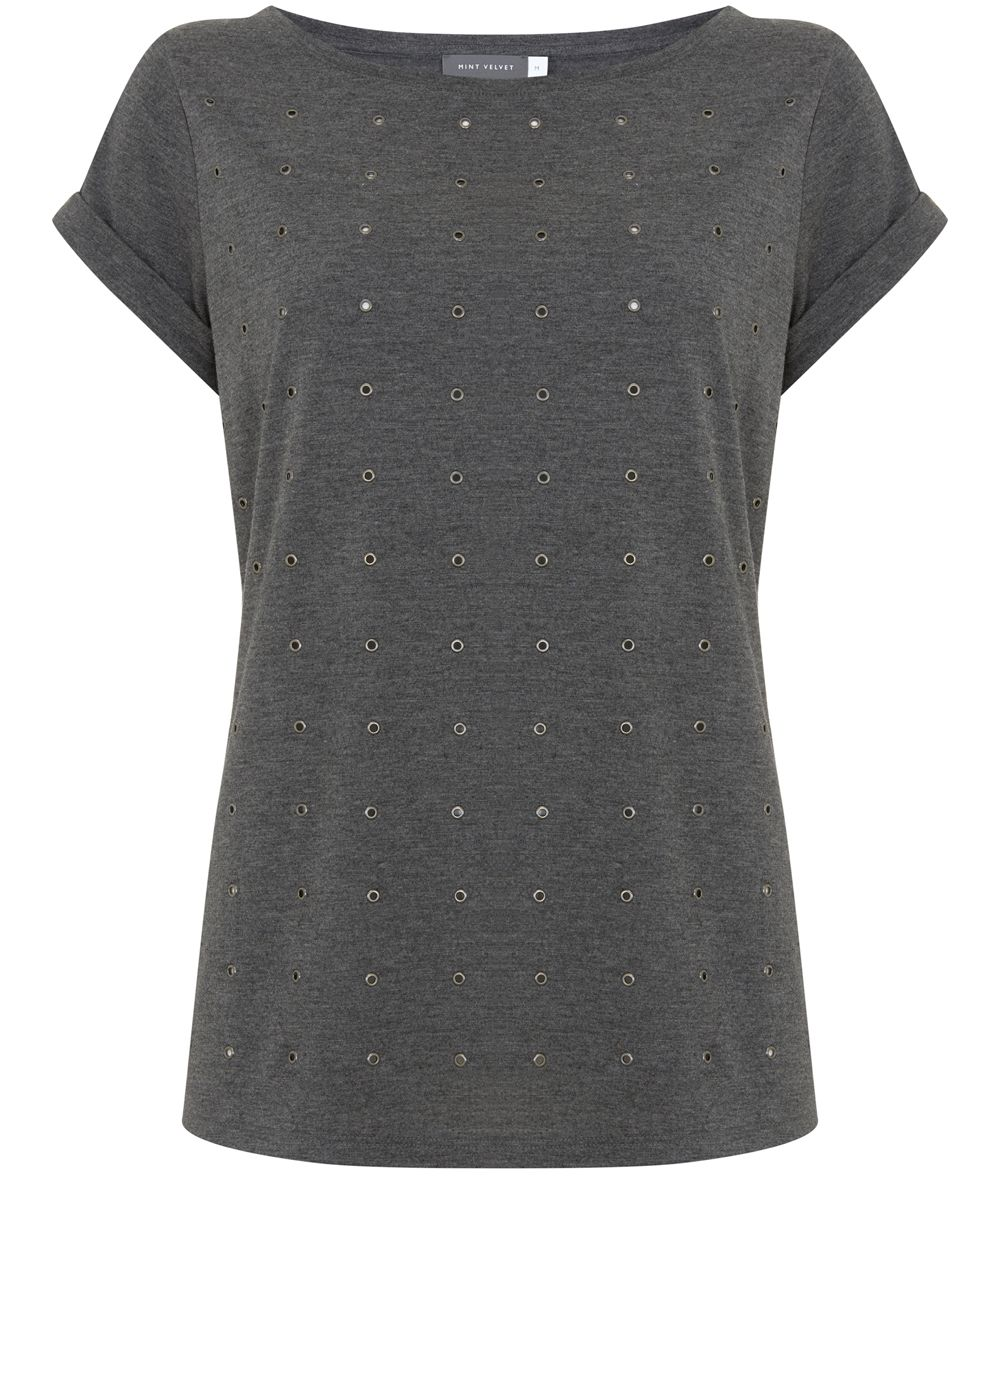 Mint Velvet Charcoal Marl Eyelet Tee, Light Grey